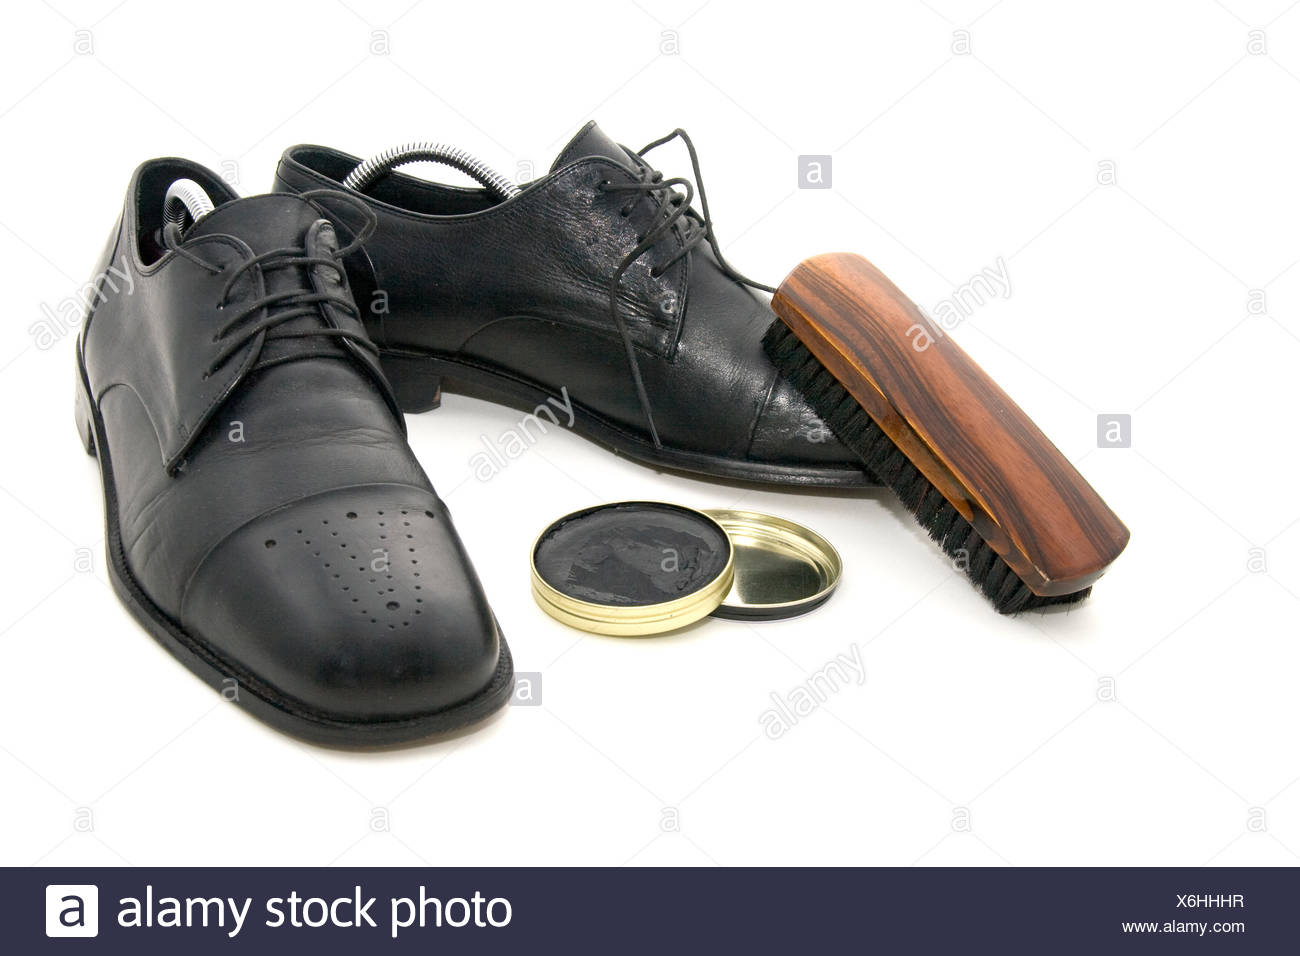 cleaning shoes - Stock Image